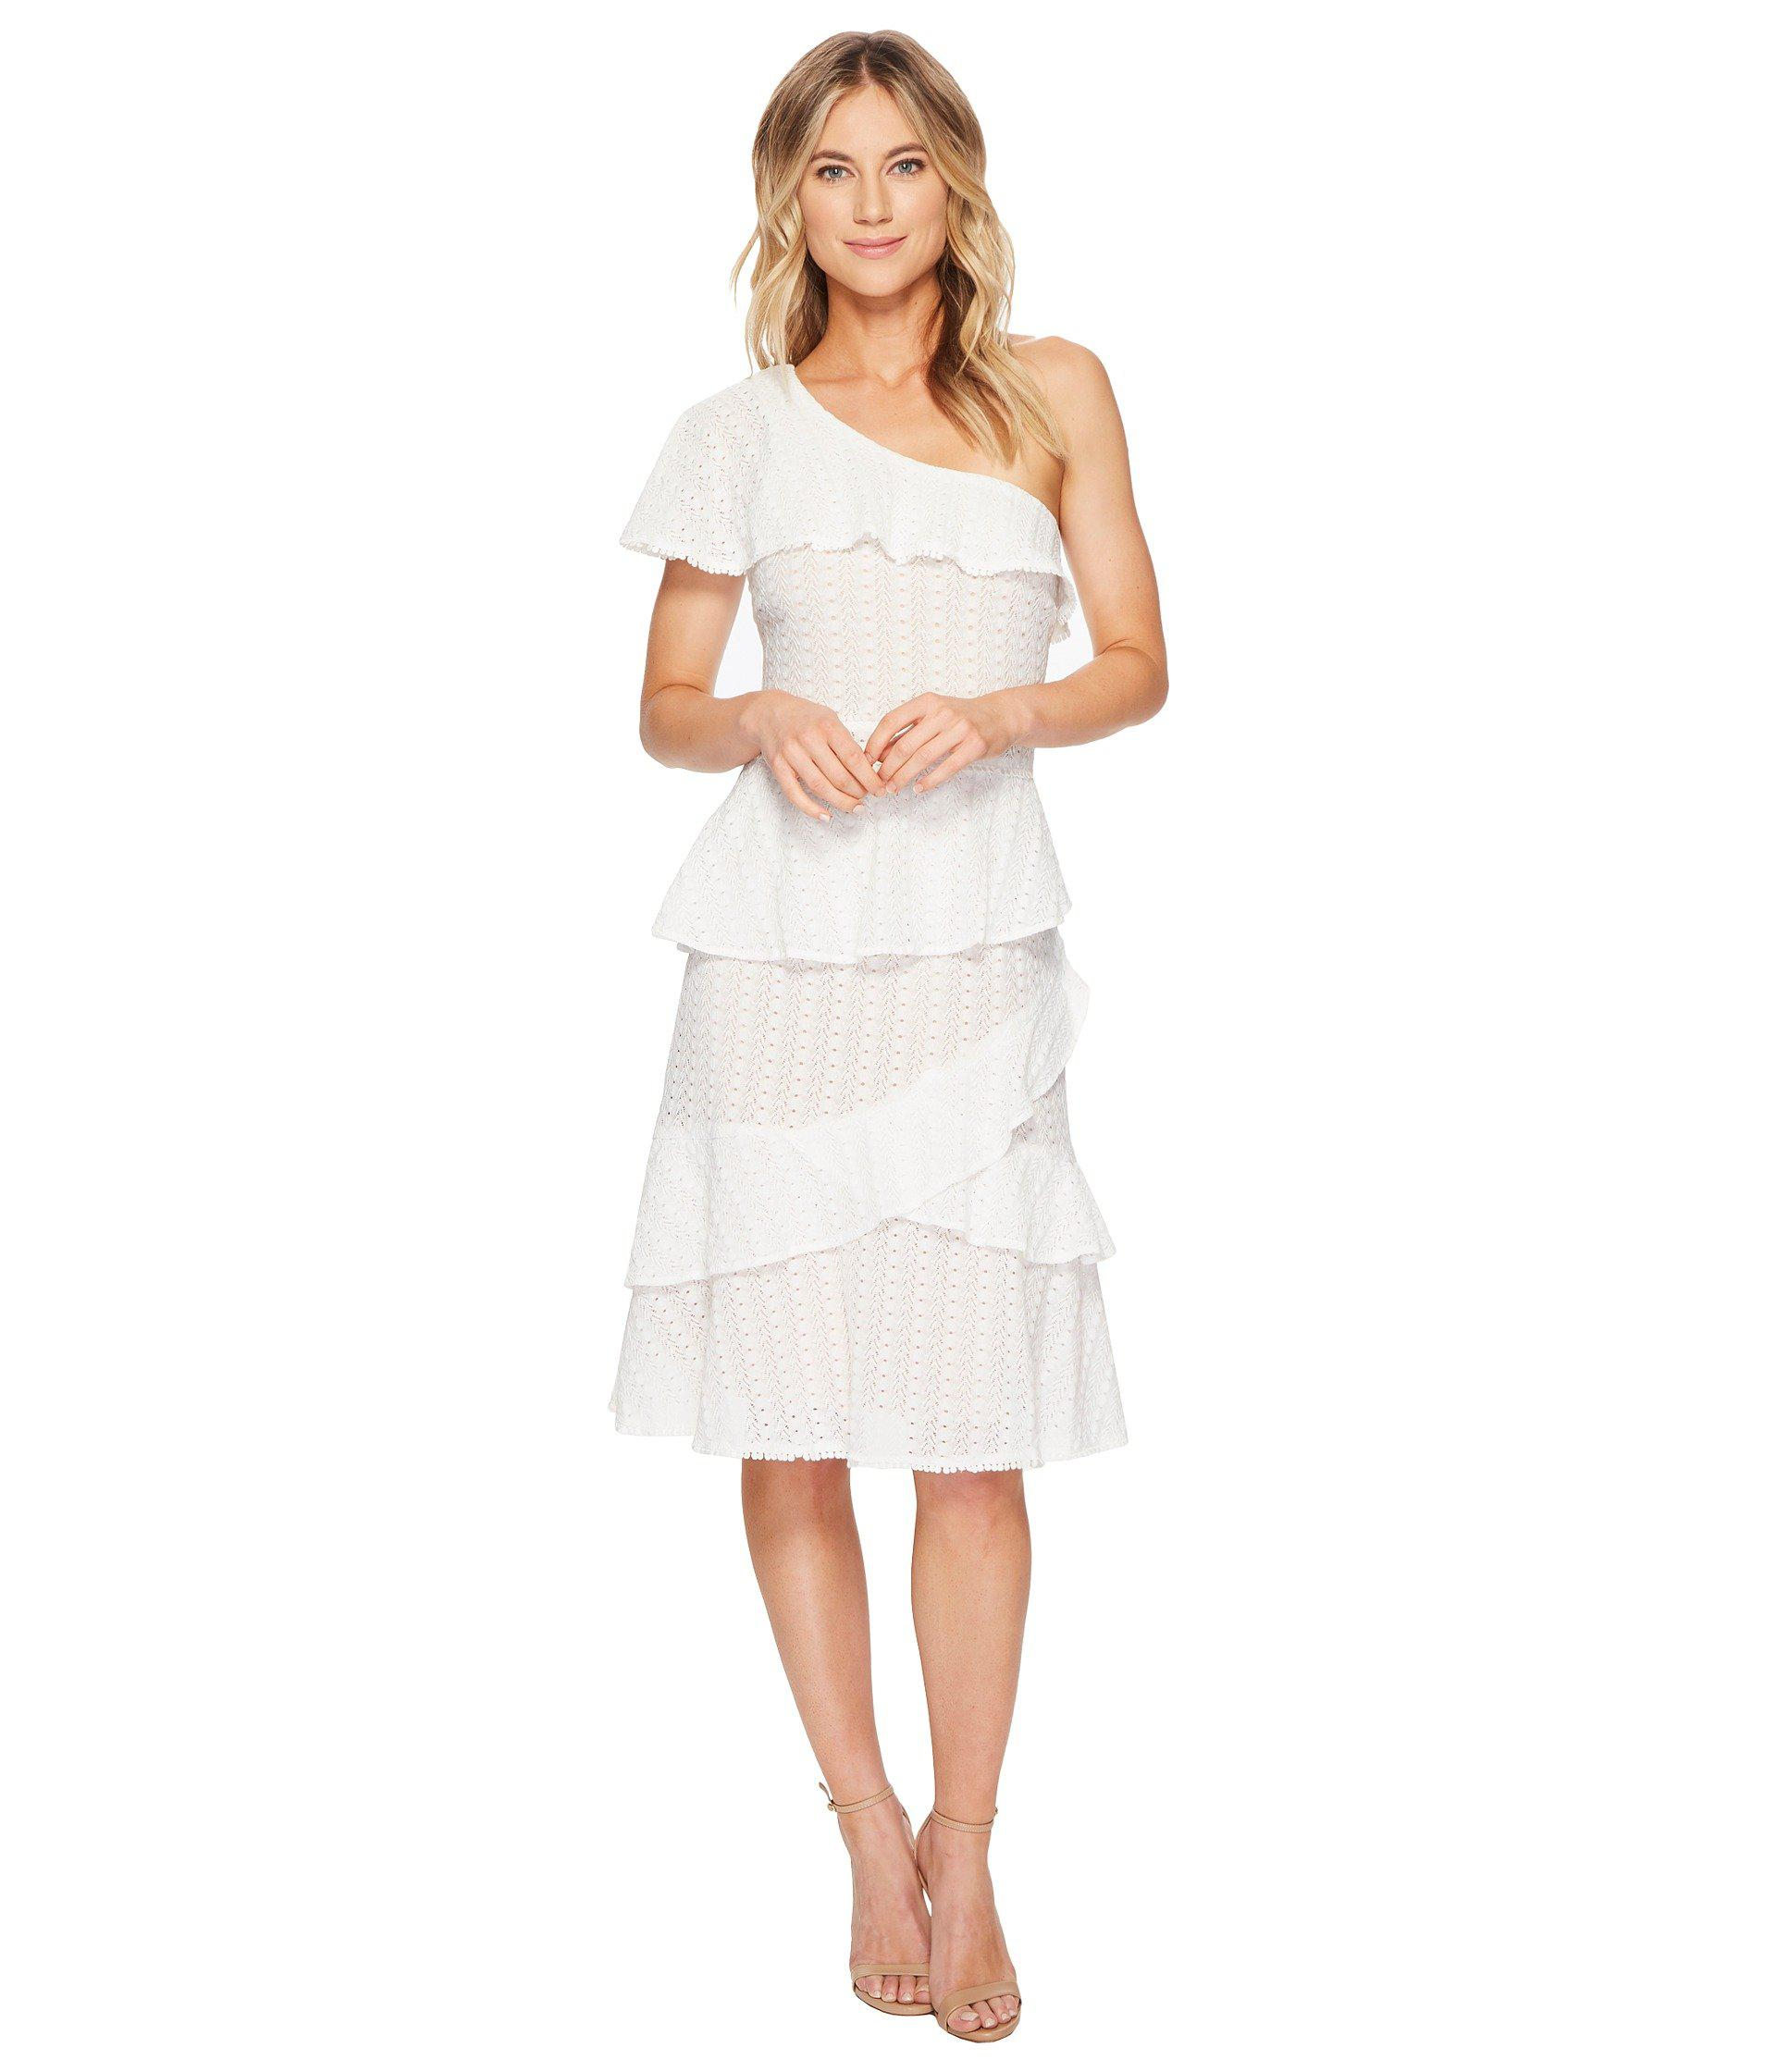 2786d020525e Adelyn Rae Trixie One Shoulder Dress in White - Lyst